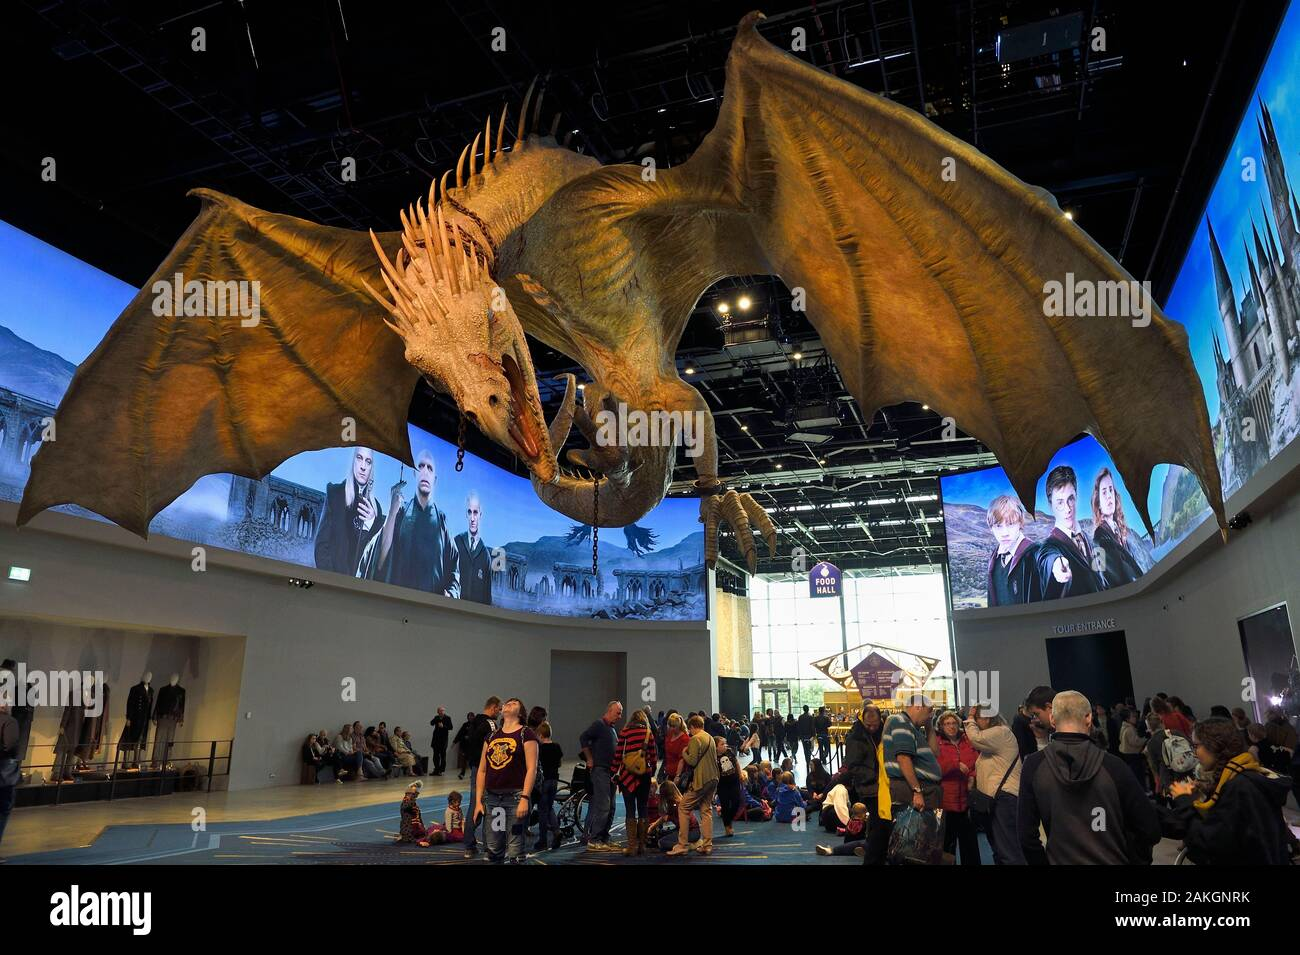 Harry Potter Exhibition High Resolution Stock Photography And Images Alamy